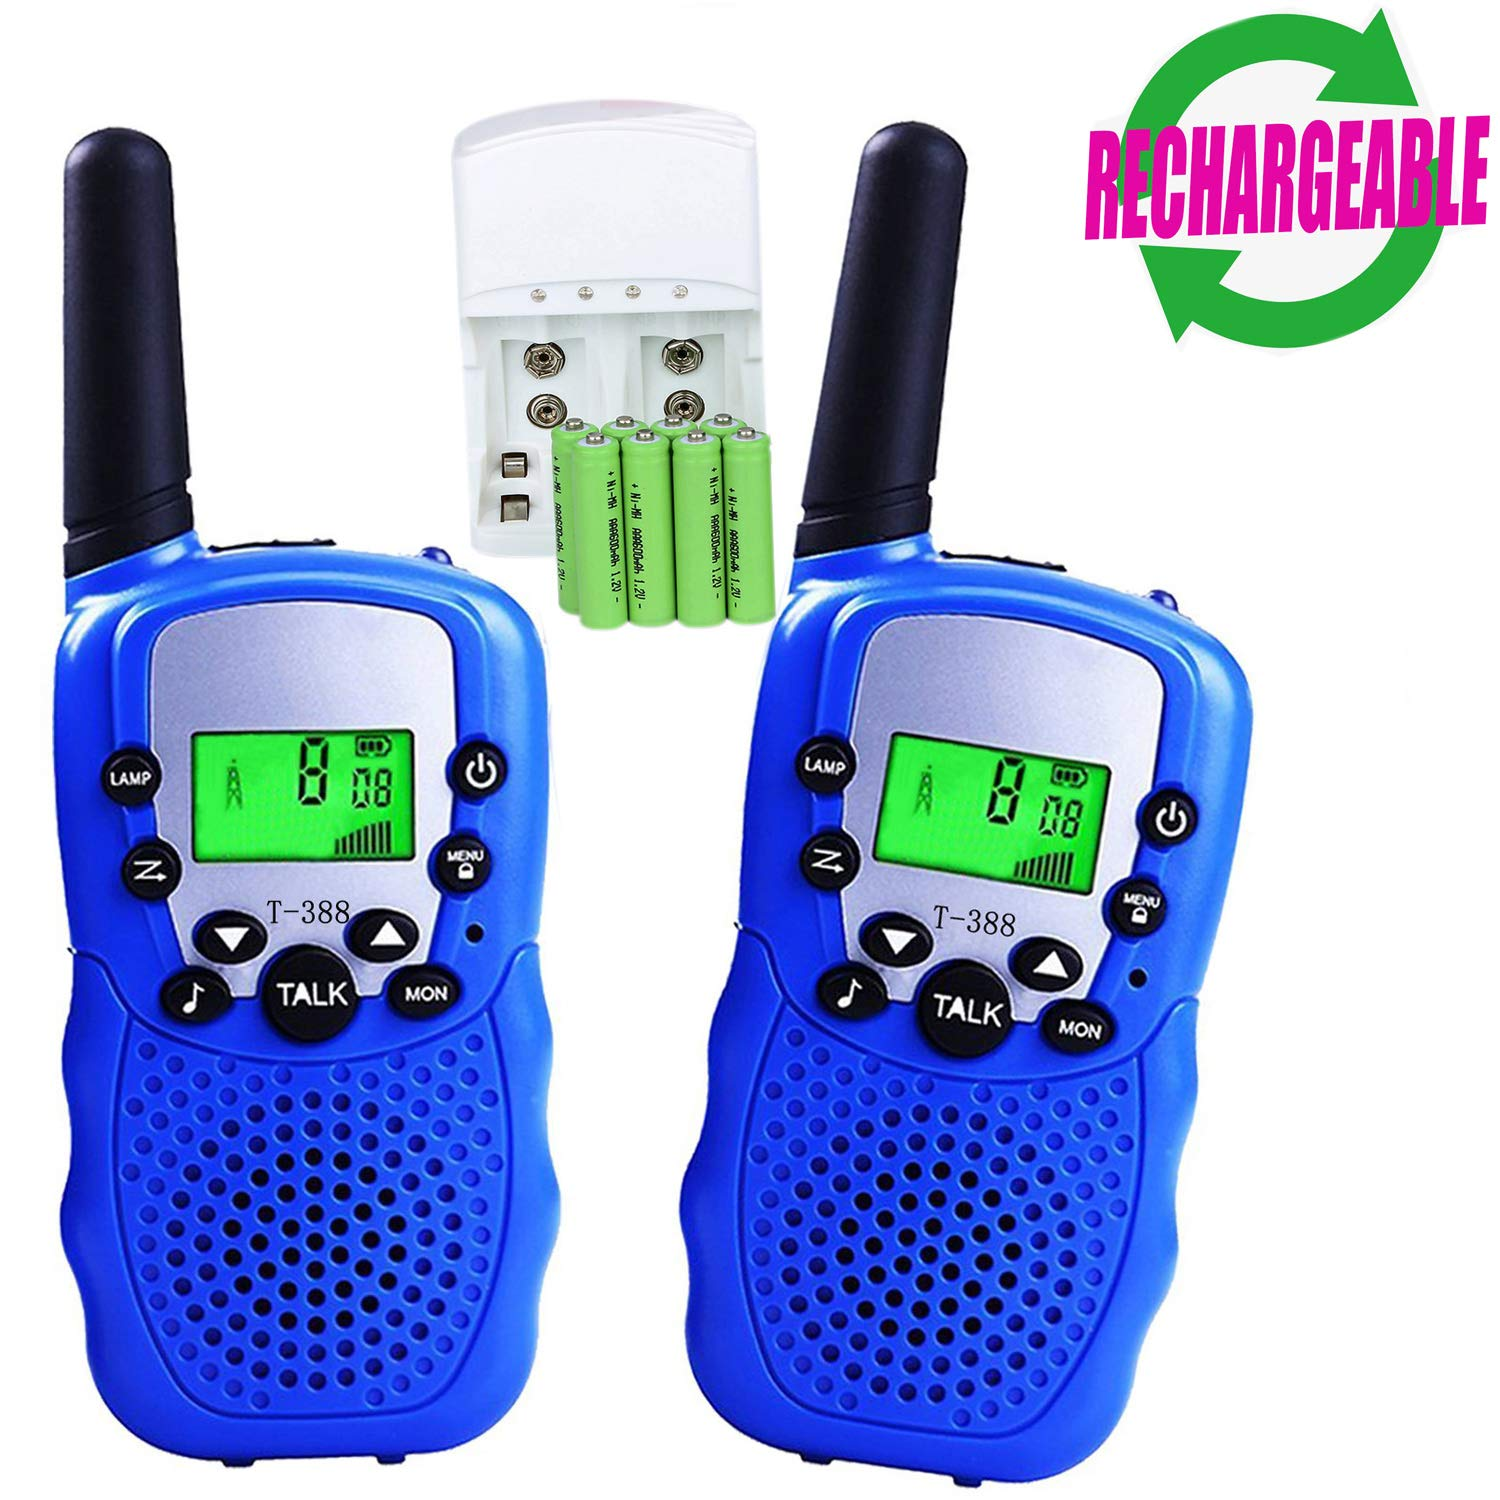 Walkie Talkies for Kids, 22 Channel 3 Mile Long Range Rechargeable FRS Two Way Radio Toys with Flashlight and LCD Screen for Boys&Girls.(Pack of 2, 8pcs Rechargeable Batteries , a Charger Included) by ZWTOPWZ (Image #1)